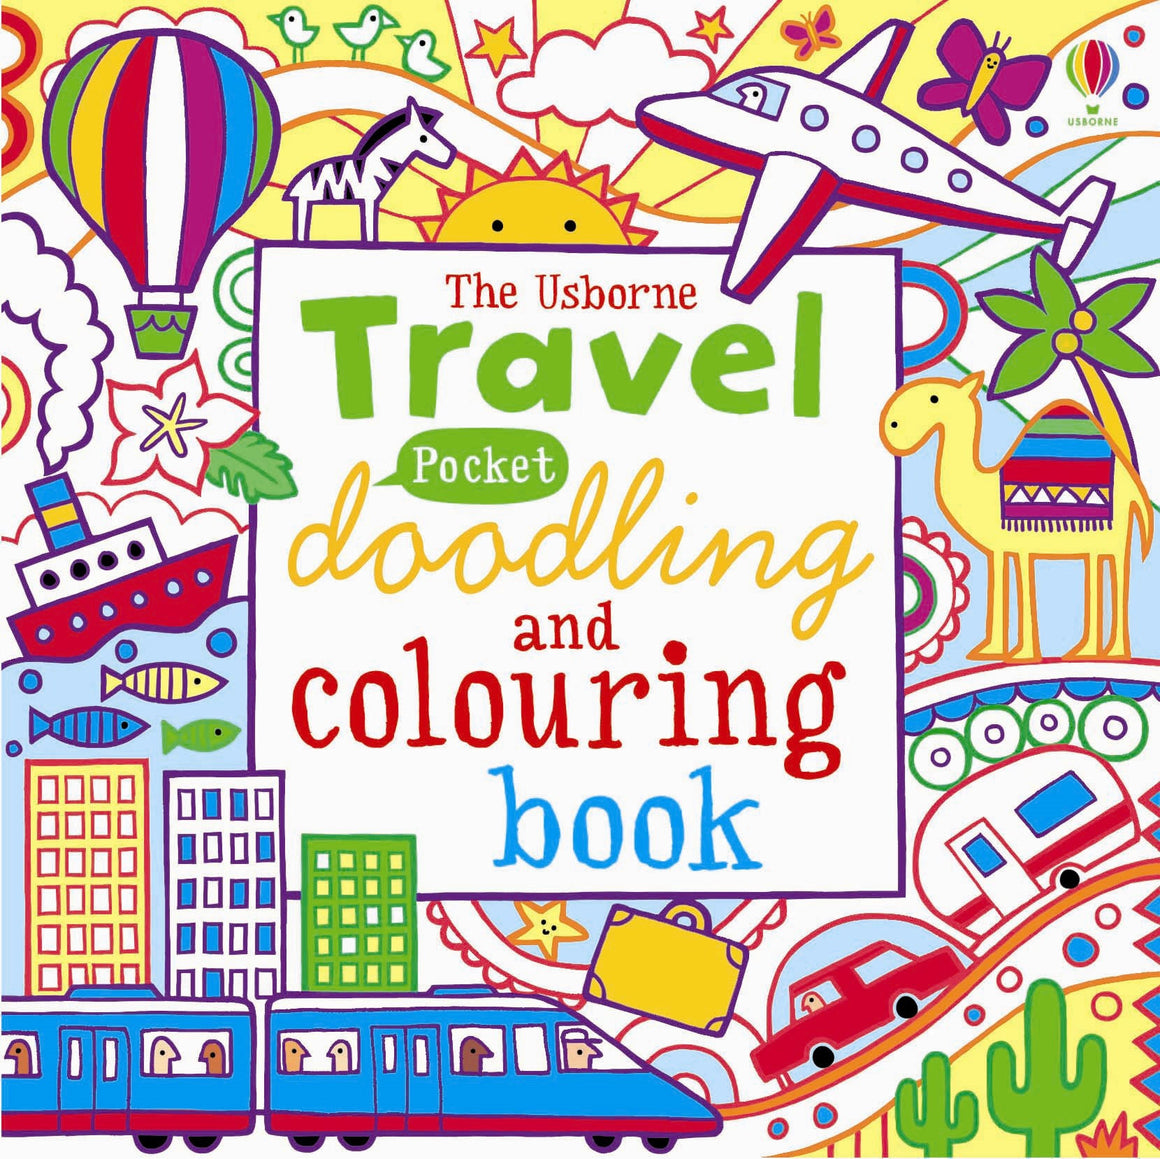 Usborne - Travel Pocket Doodling and Colouring Book